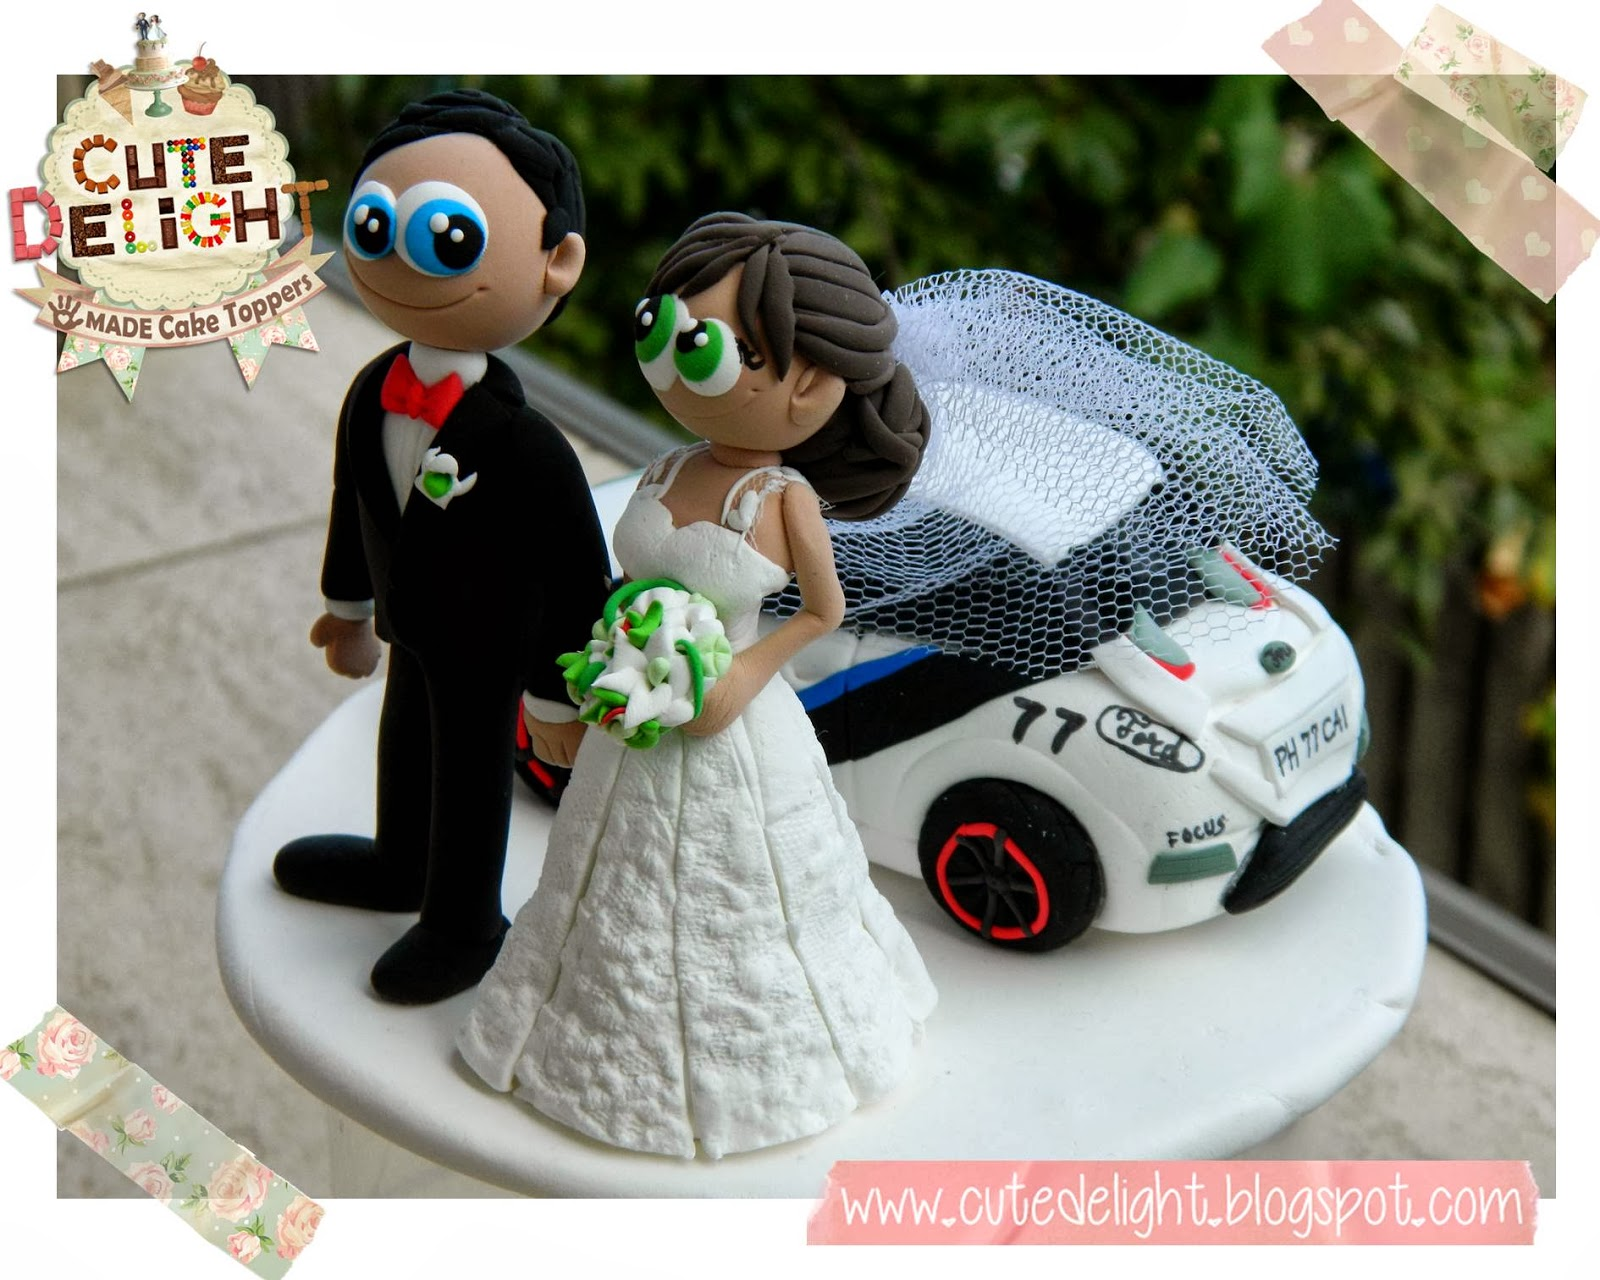 Wedding cake toppers  Custom Cake Topper  Funny cake toppers  Cake     Wedding Cake Topper Custom Made   Bride and Groom with Racing Car